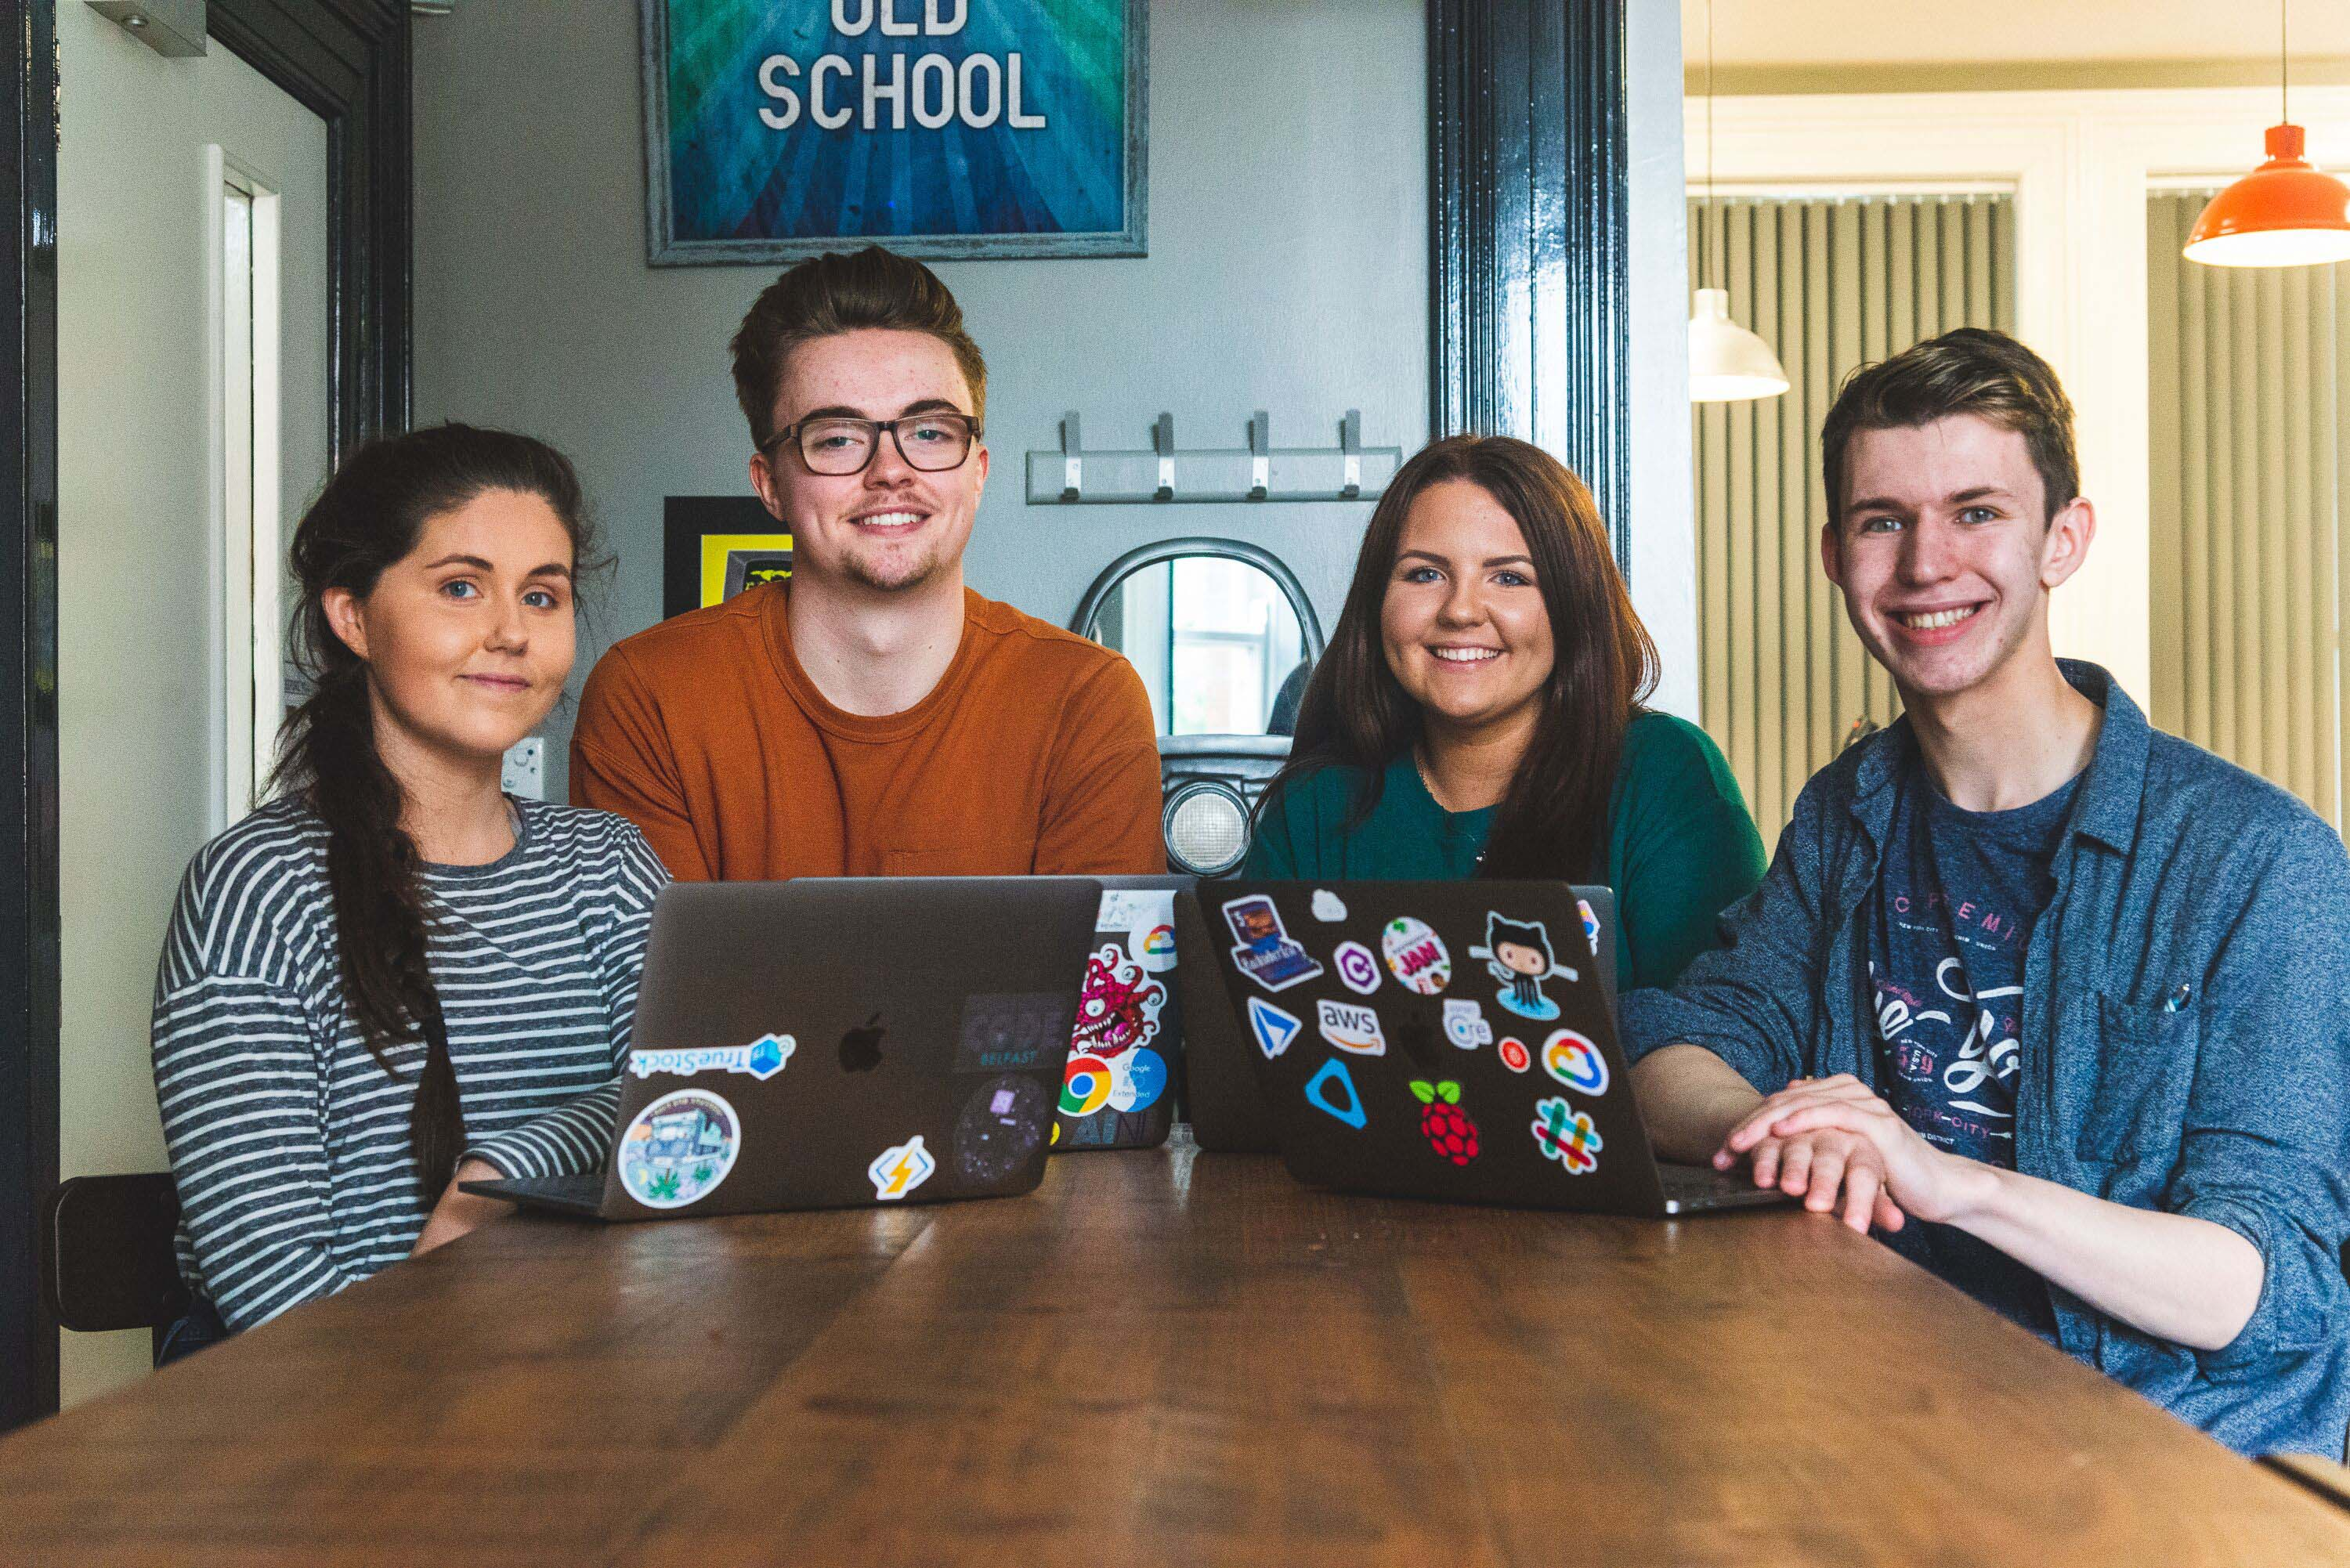 Kainos offering over 200 free opportunities for young people to gain coding and A.I. skills for their CV this Summer